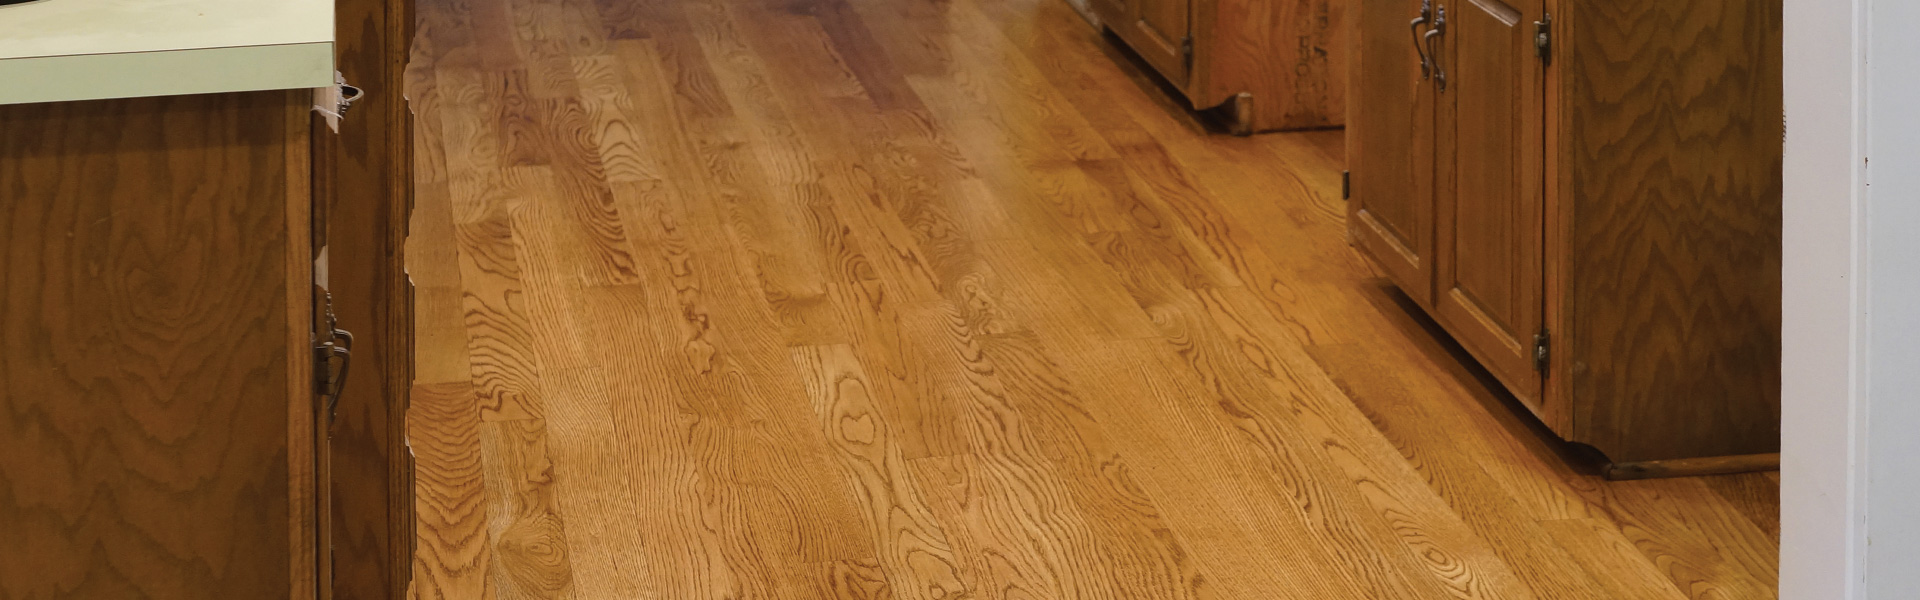 RIchey Hardwood Floors - Residential Flooring